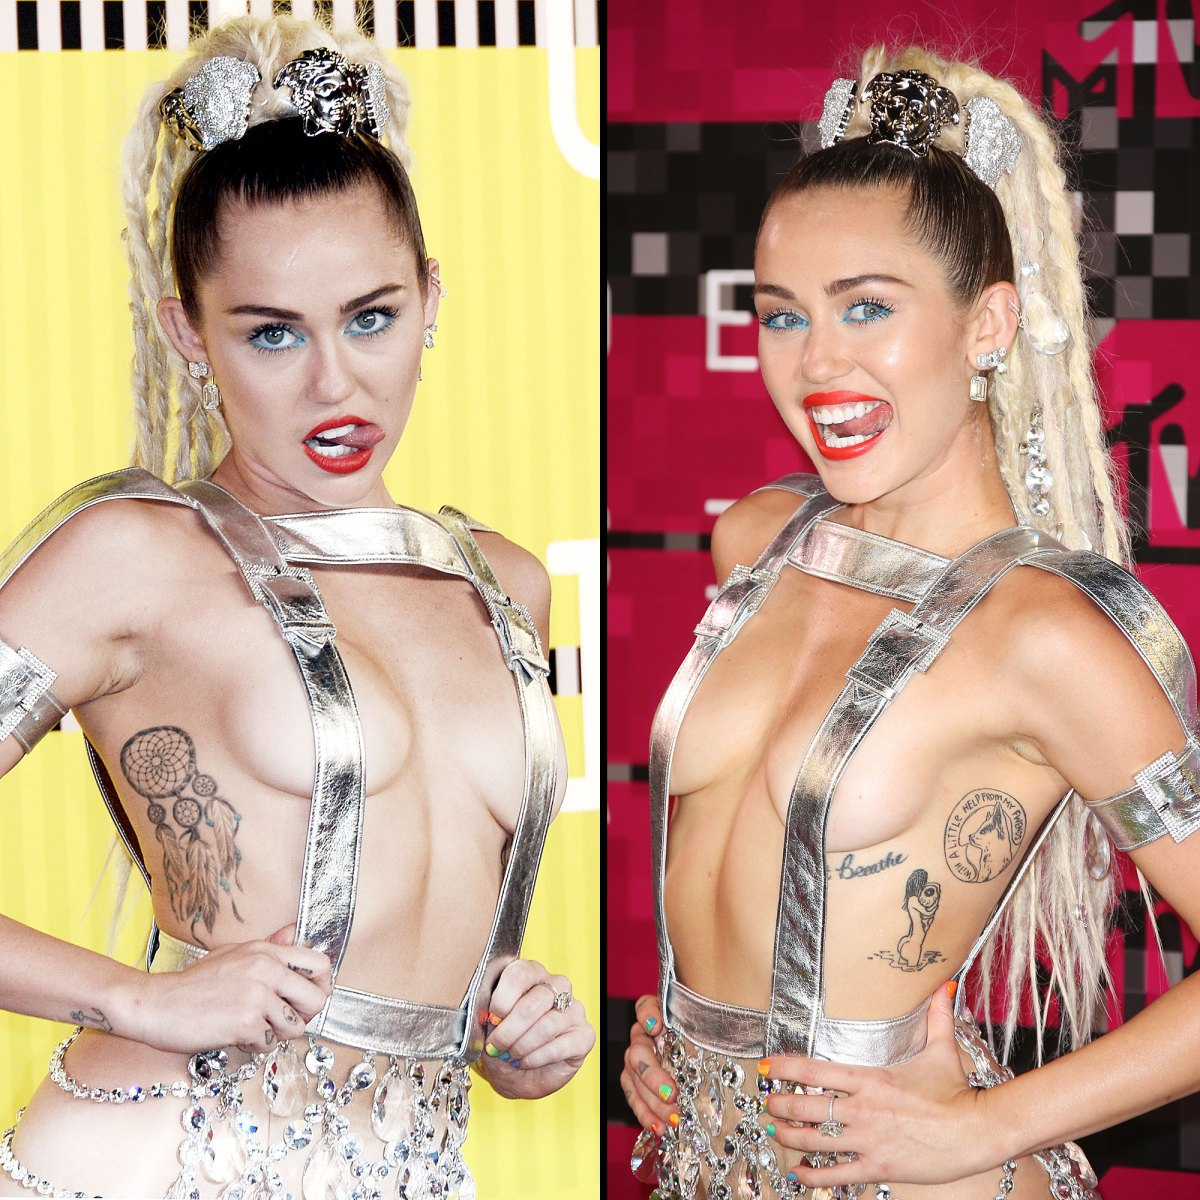 Miley cyrus pics porn Miley Cyrus Tattoos Guide To All Her Ink And Their Meanings